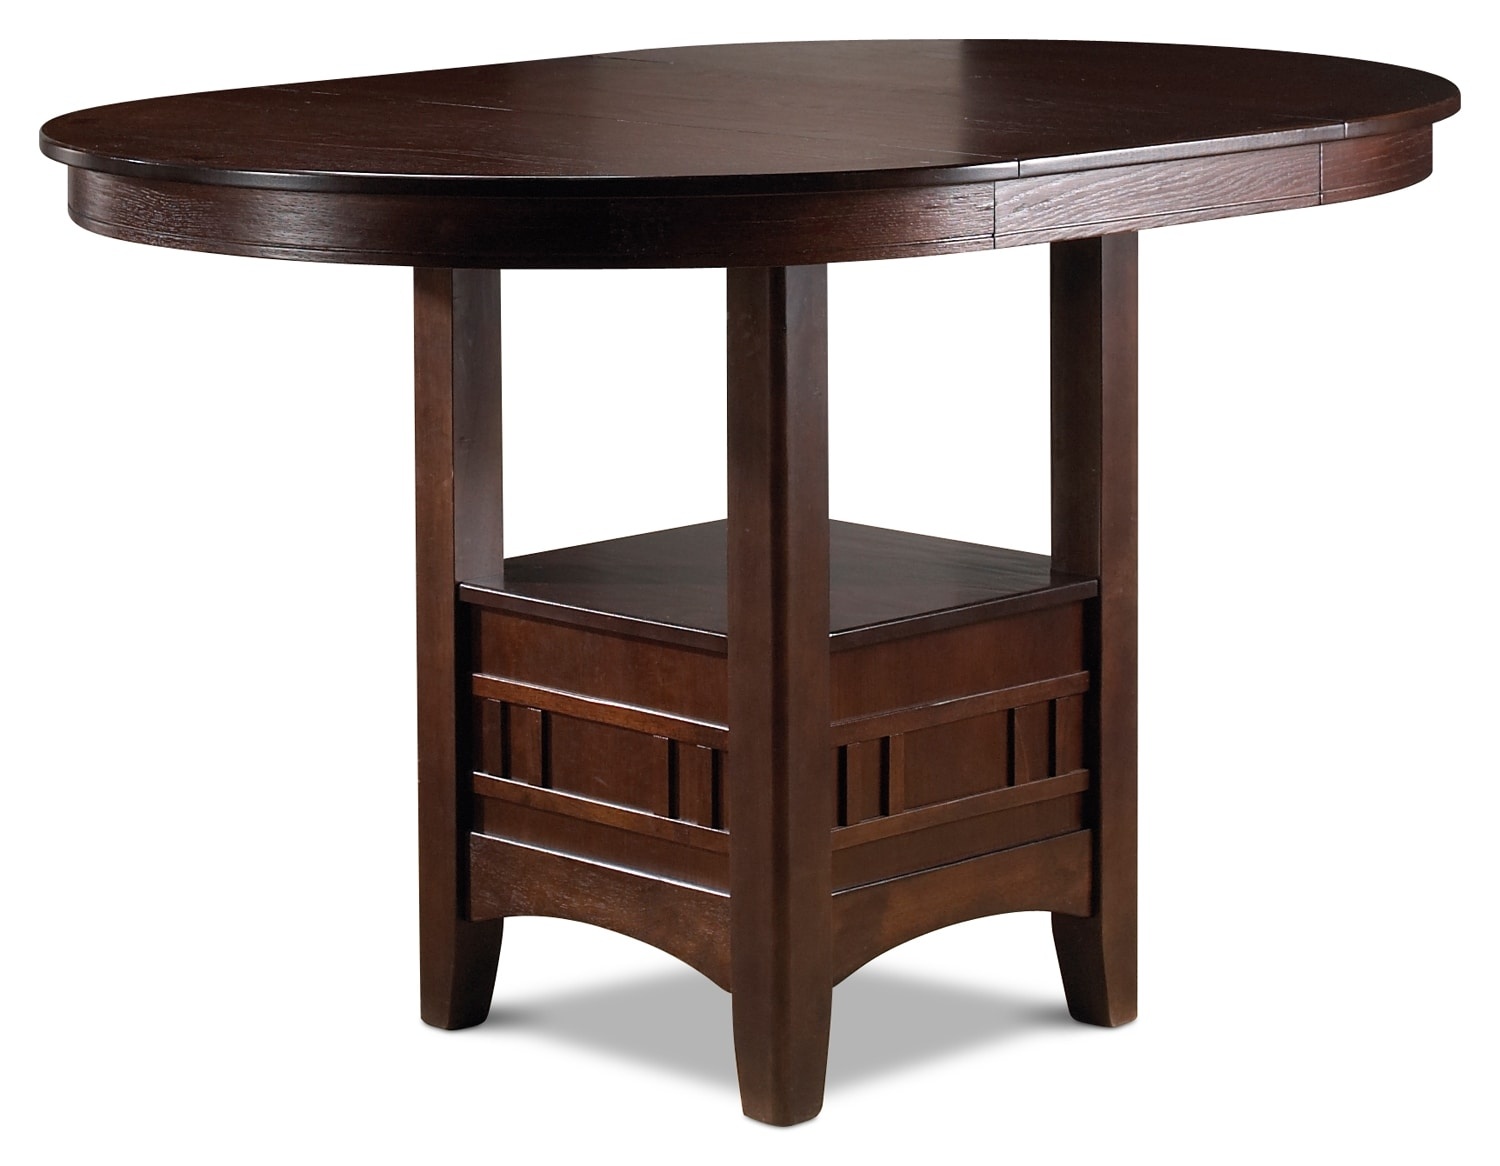 Casual Dining Room Furniture - Brighton Pub Table